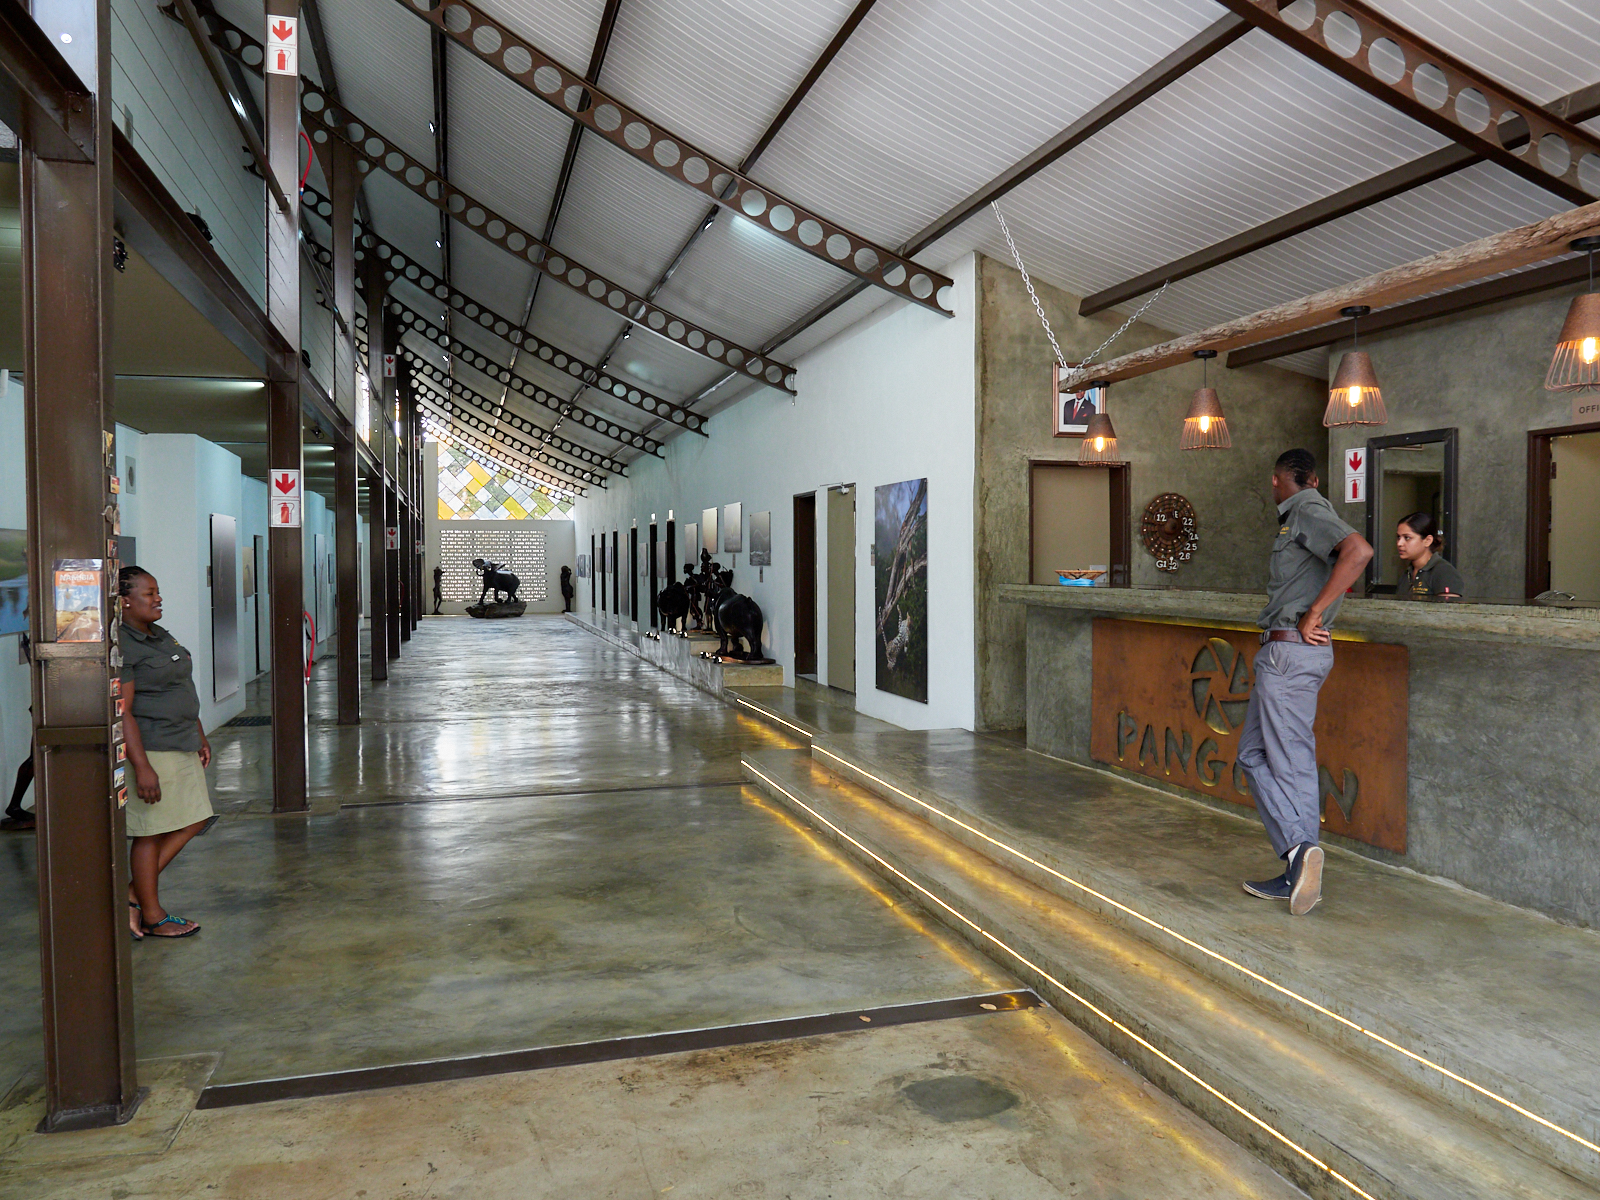 Reception and the ground floor concourse